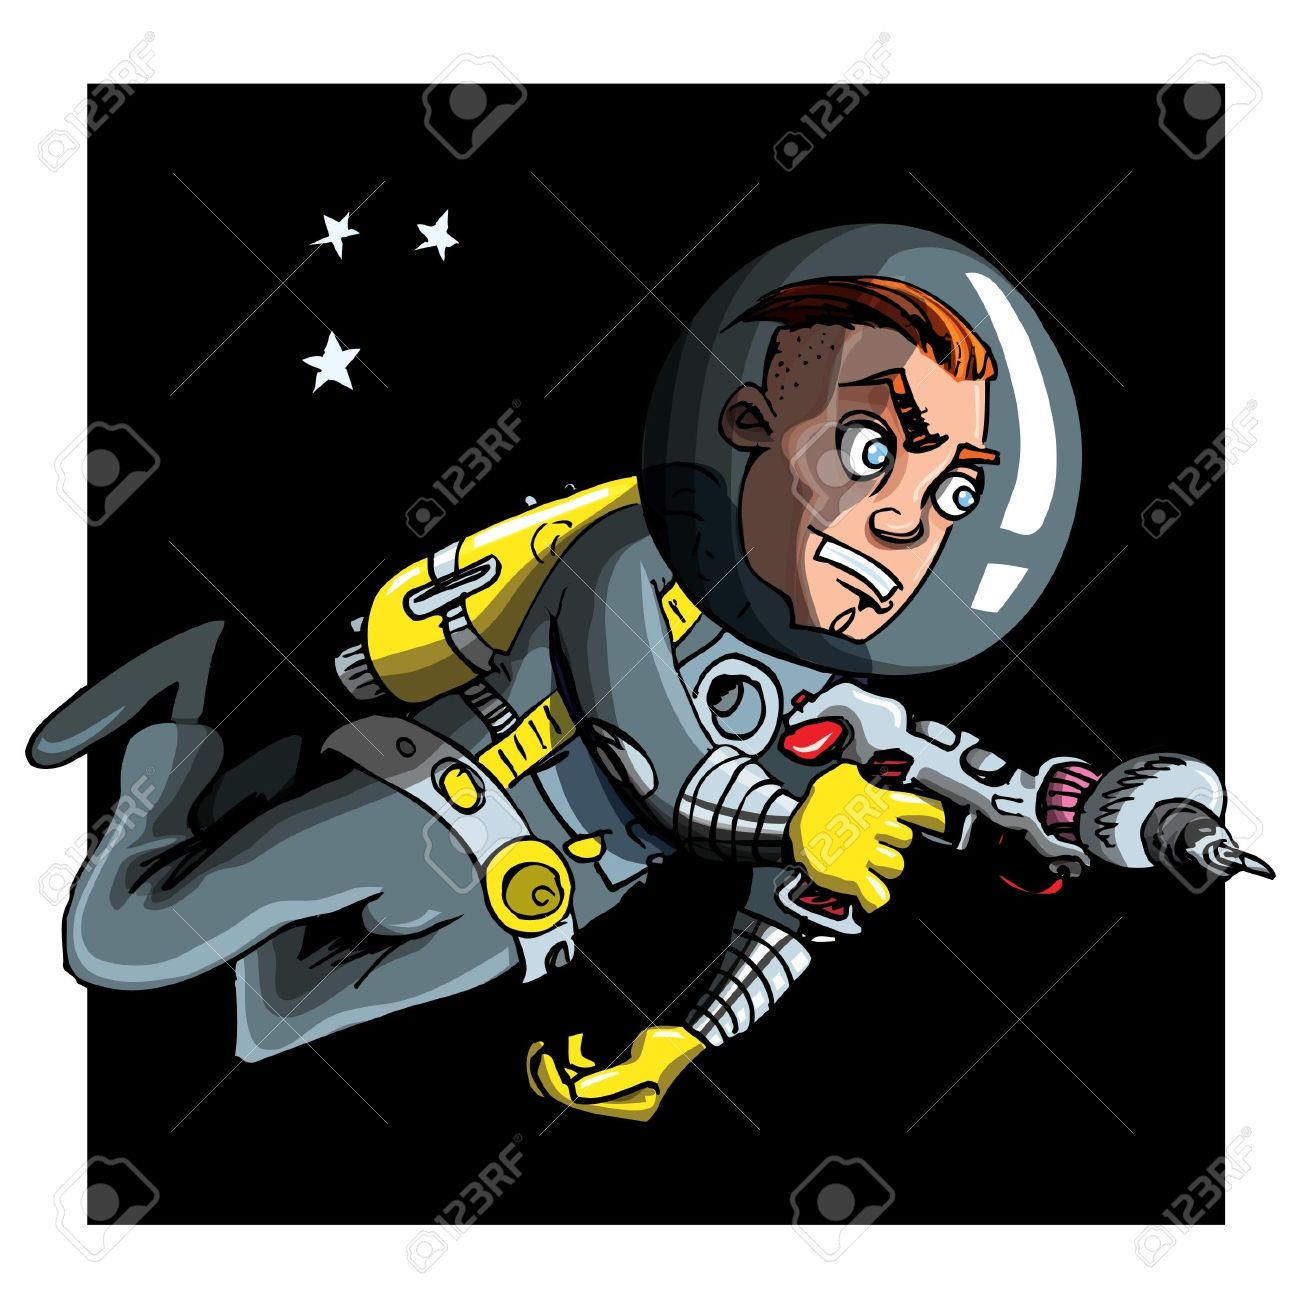 Cartoon Astronaout In A Space Suit. Blackness And Stars Behind.